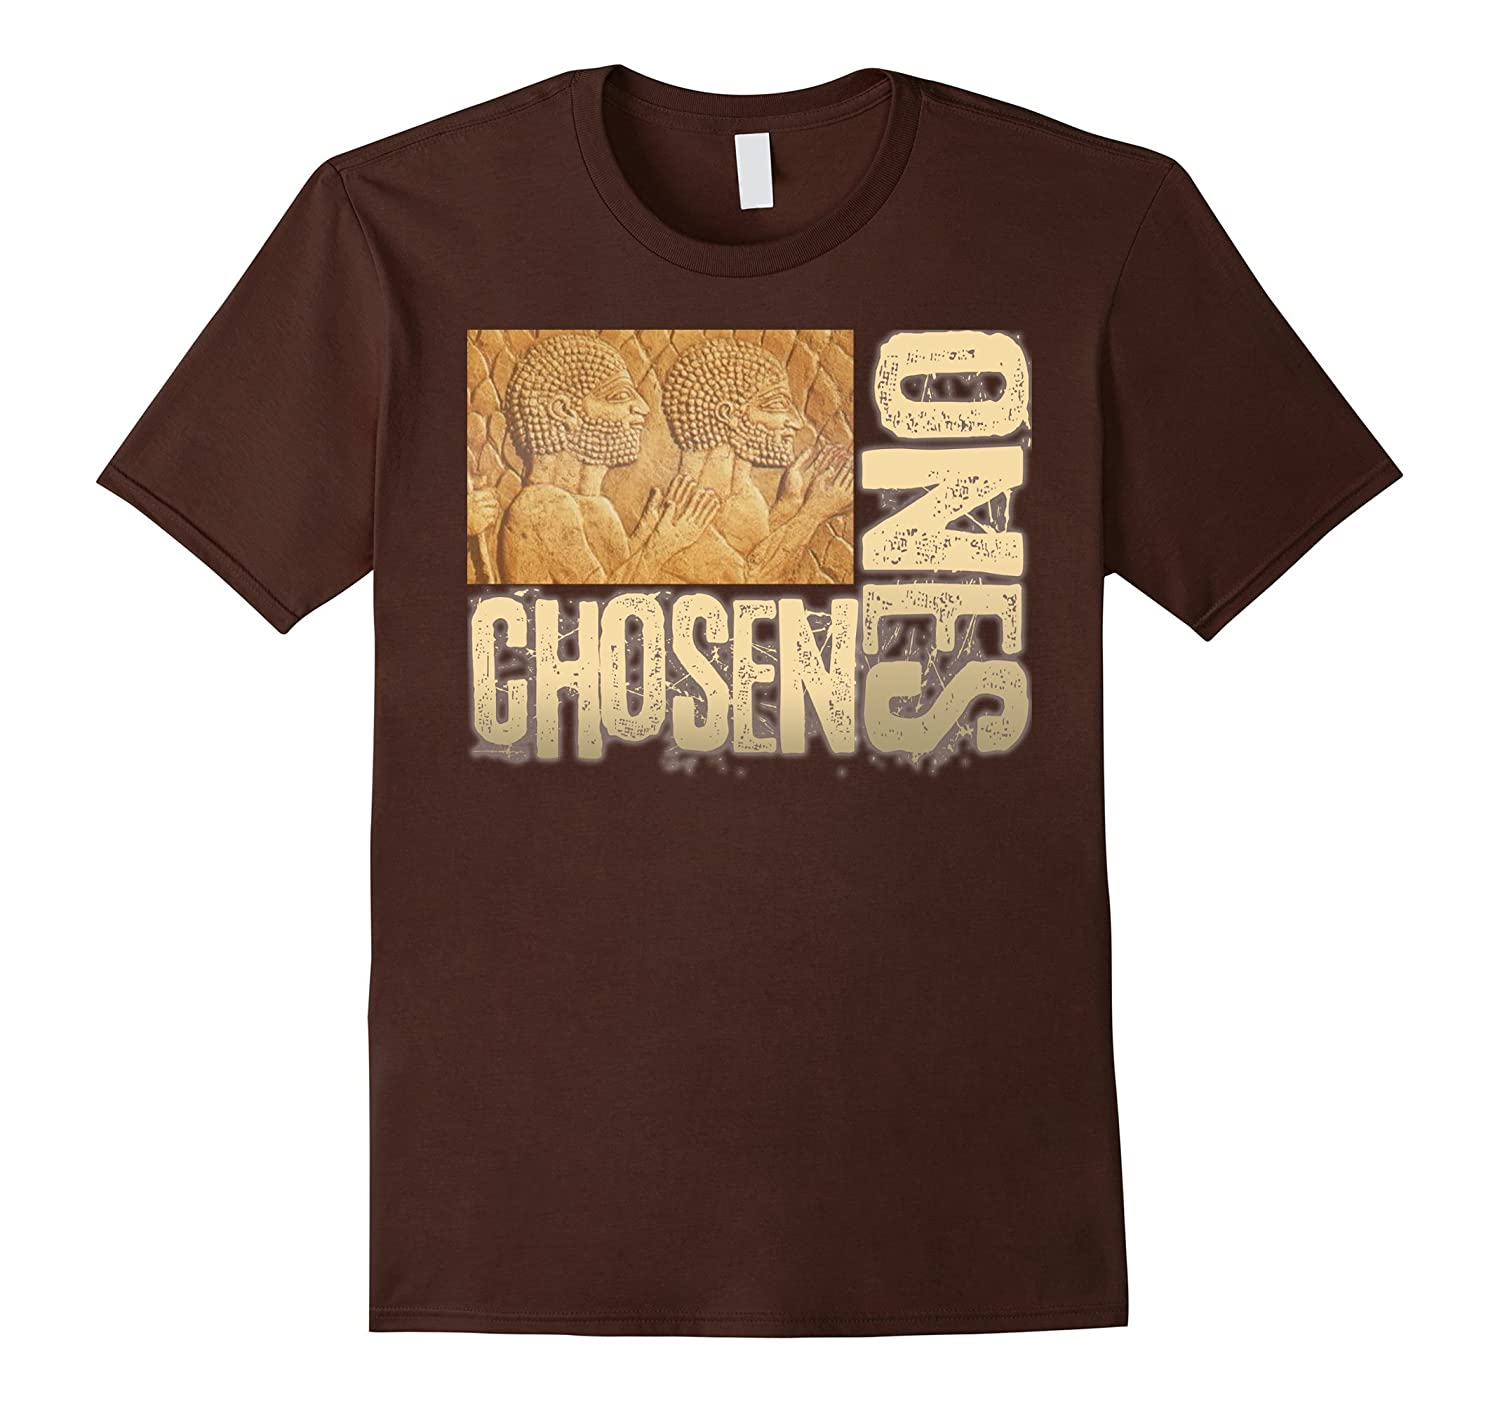 Hebrew Israelite Tribe Judah Torah Truth Chosen Ones T-Shirt